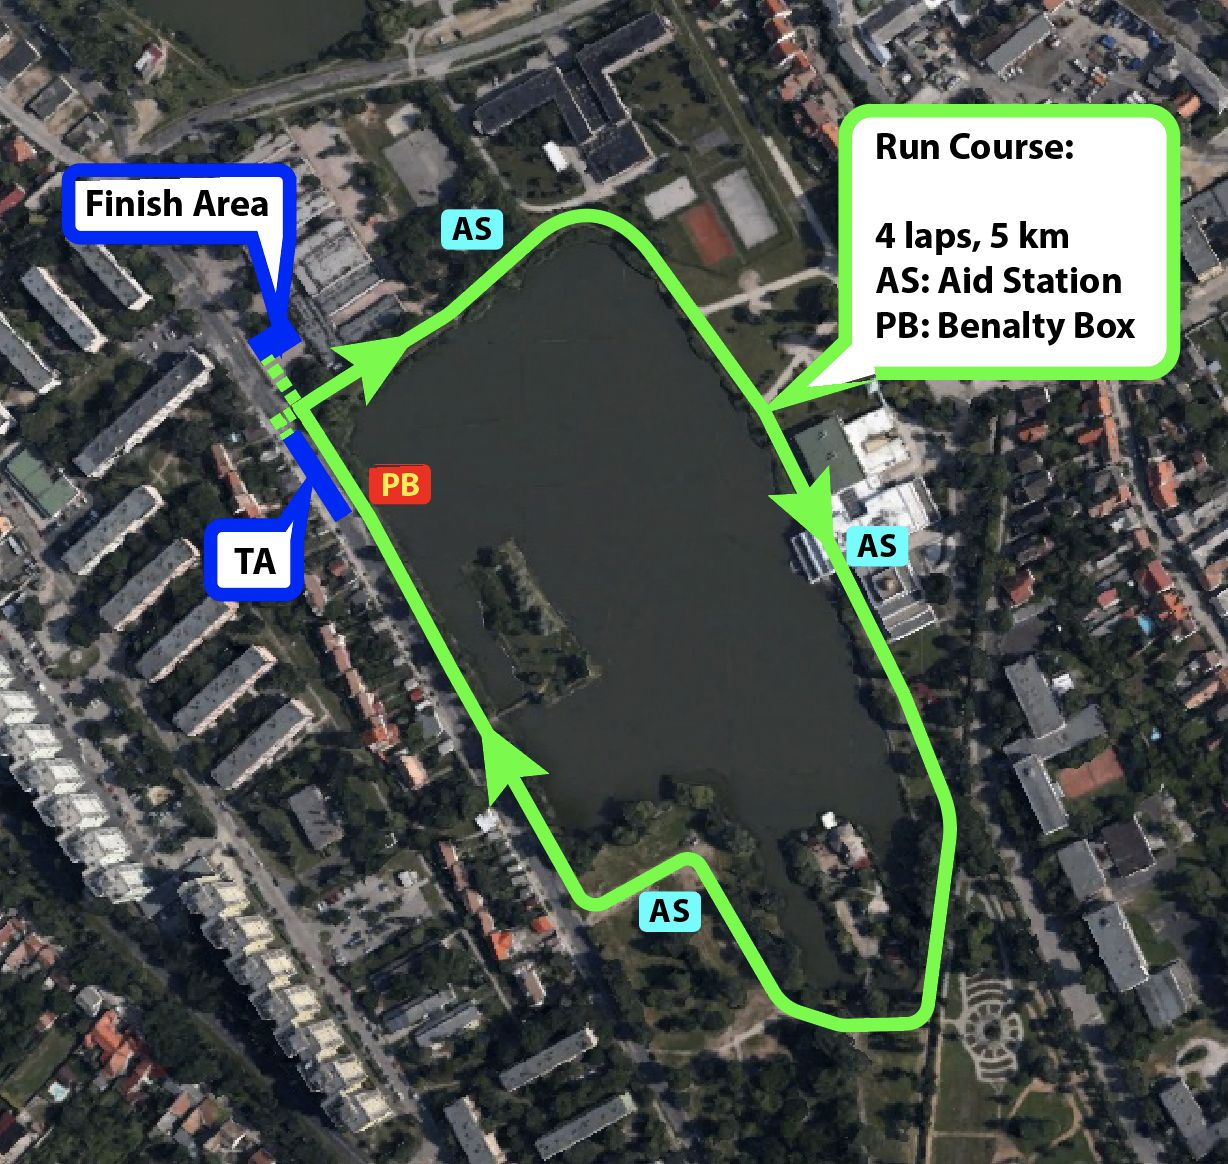 2018 Szkesfehrvar ETU Sprint Triathlon European Cup Triathlonorg